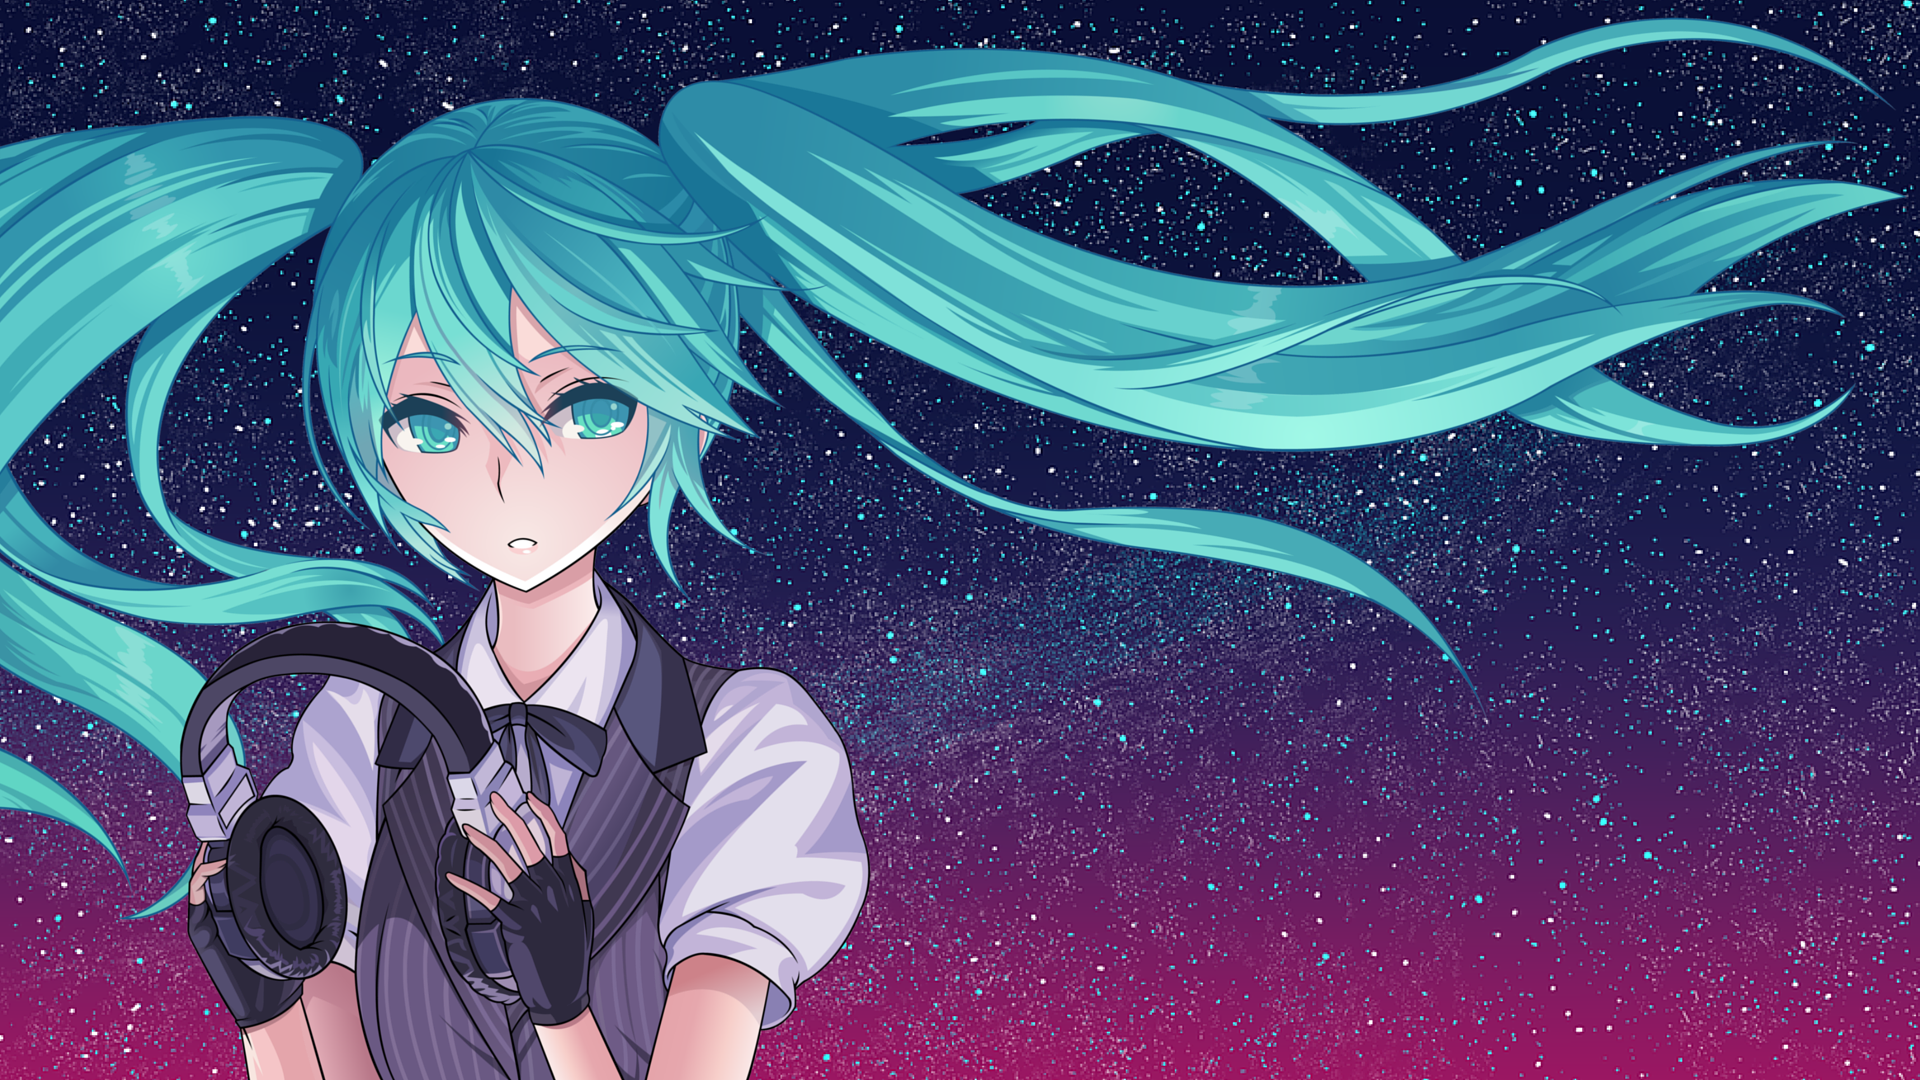 hatsune miku starry sky full hd wallpaper and background